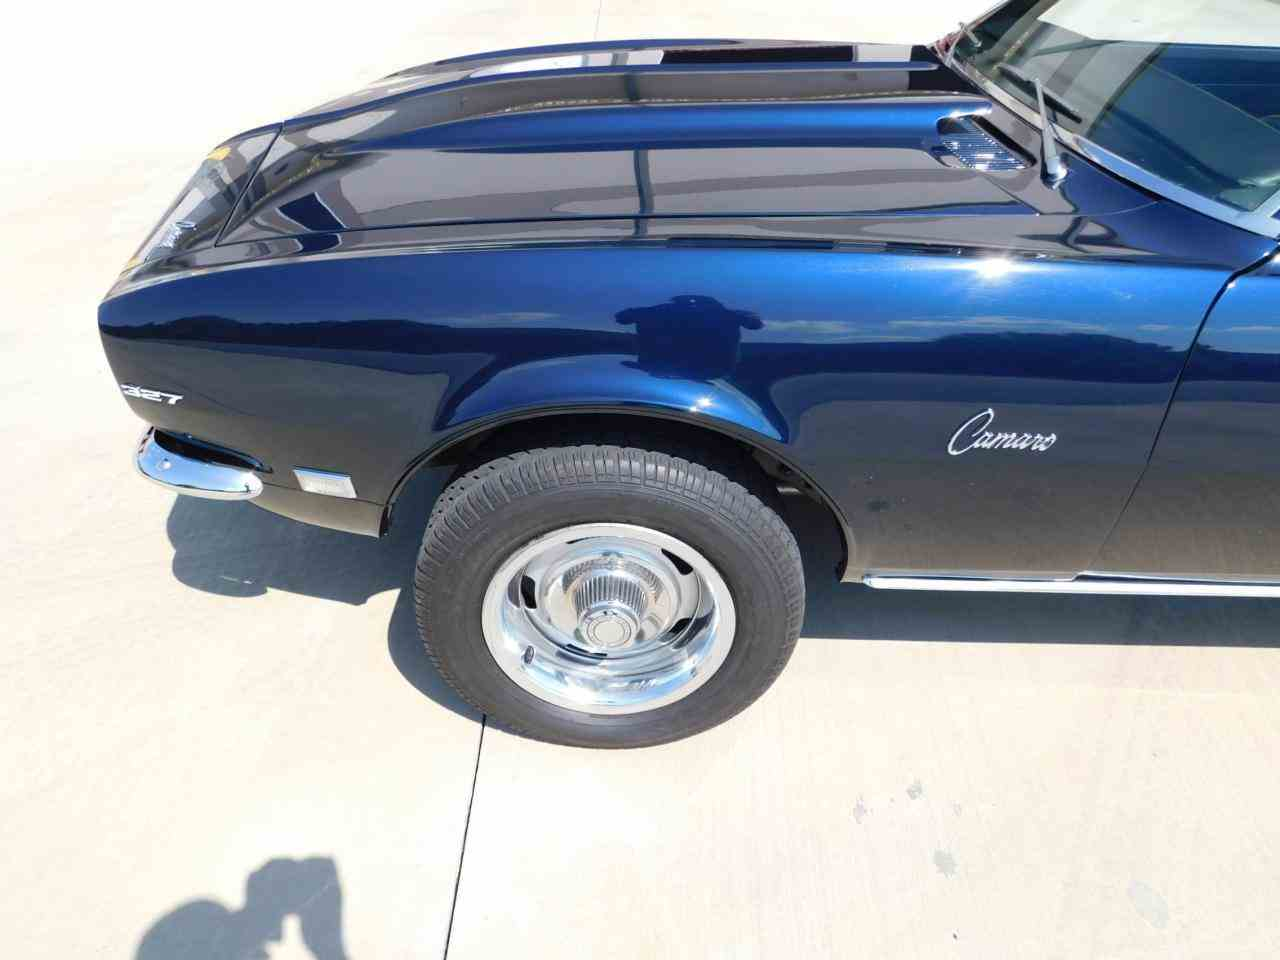 Large Picture of 1968 Camaro located in Alpharetta Georgia - $33,995.00 Offered by Gateway Classic Cars - Atlanta - LRVS